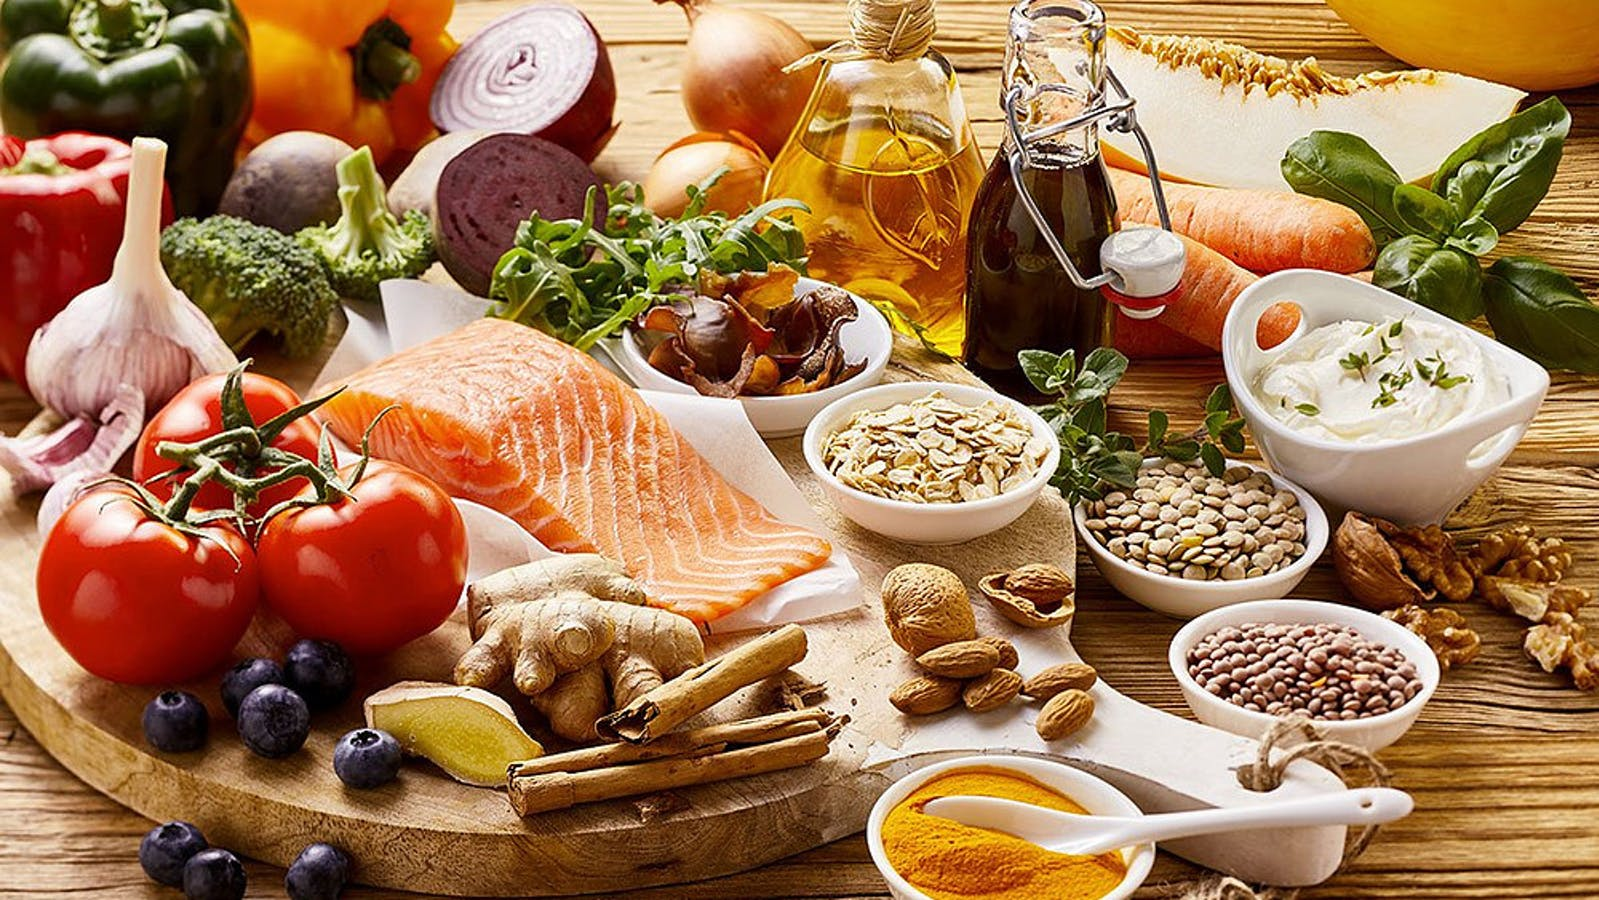 What is the structure of the Mediterranean diet pyramid?